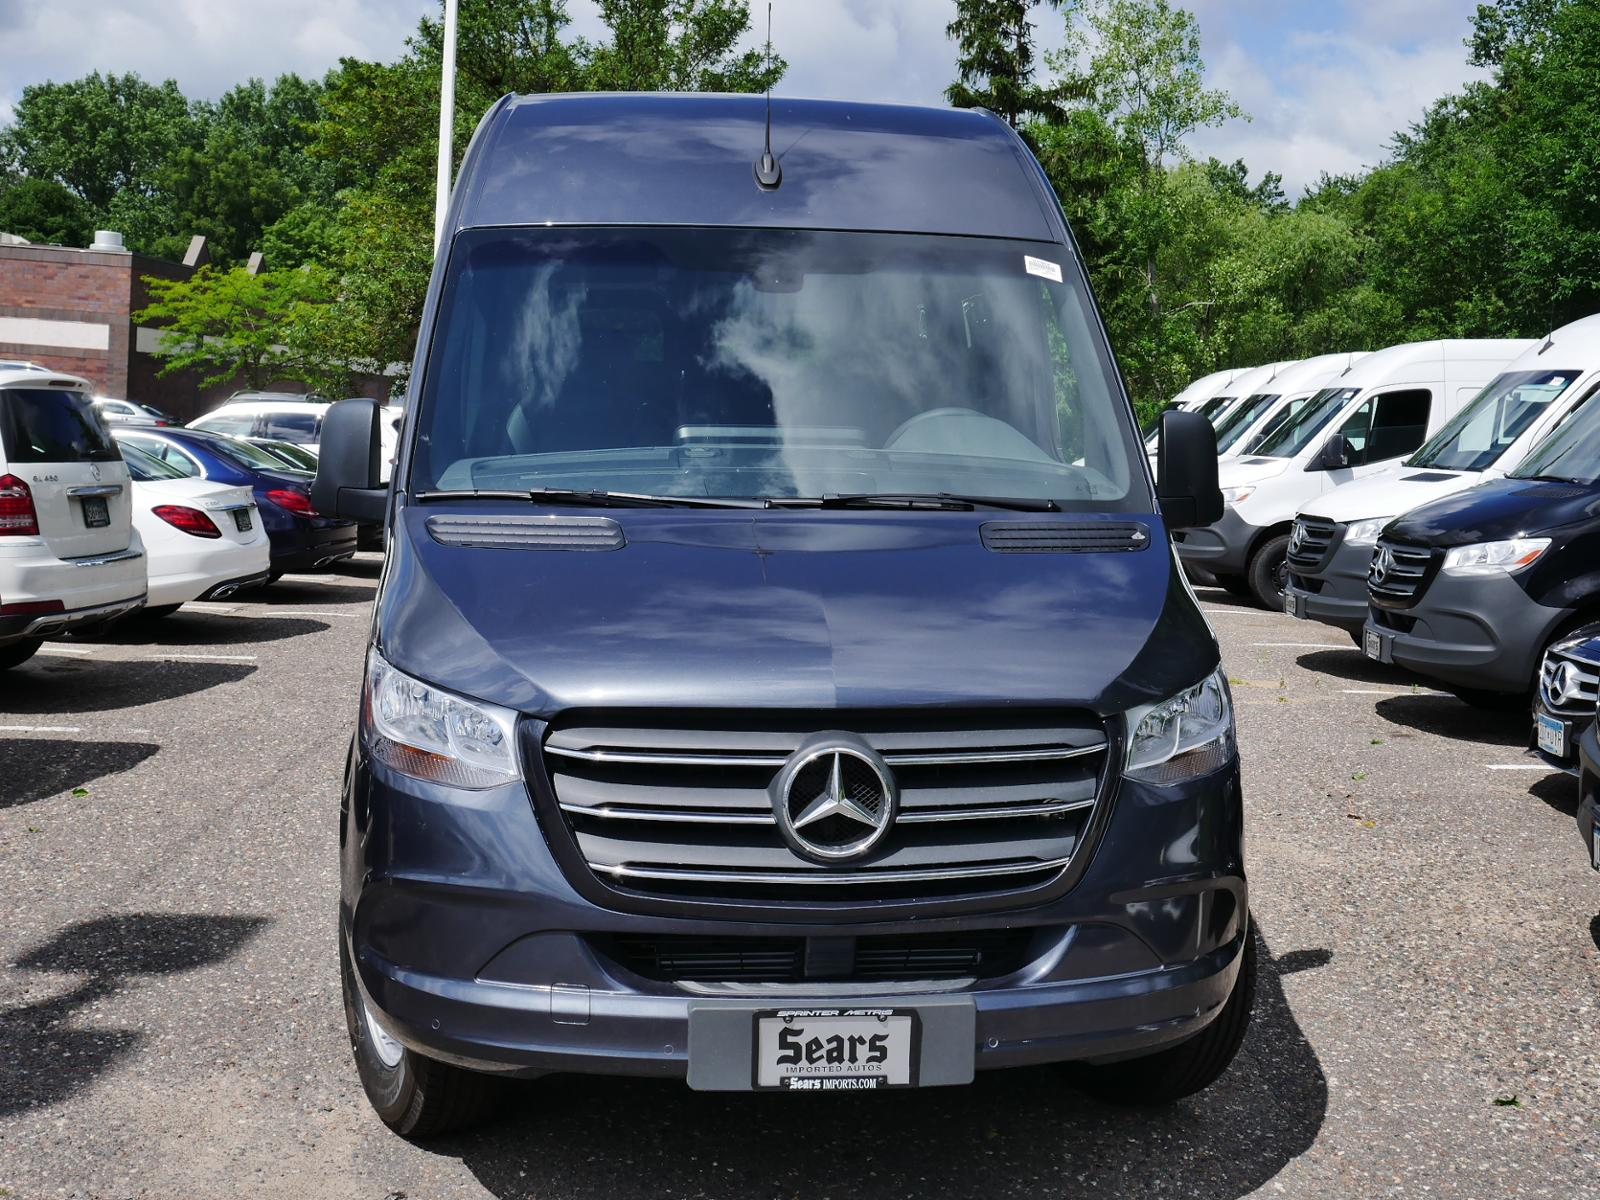 New 2019 Mercedes-Benz Sprinter 2500 2500 Passenger Van